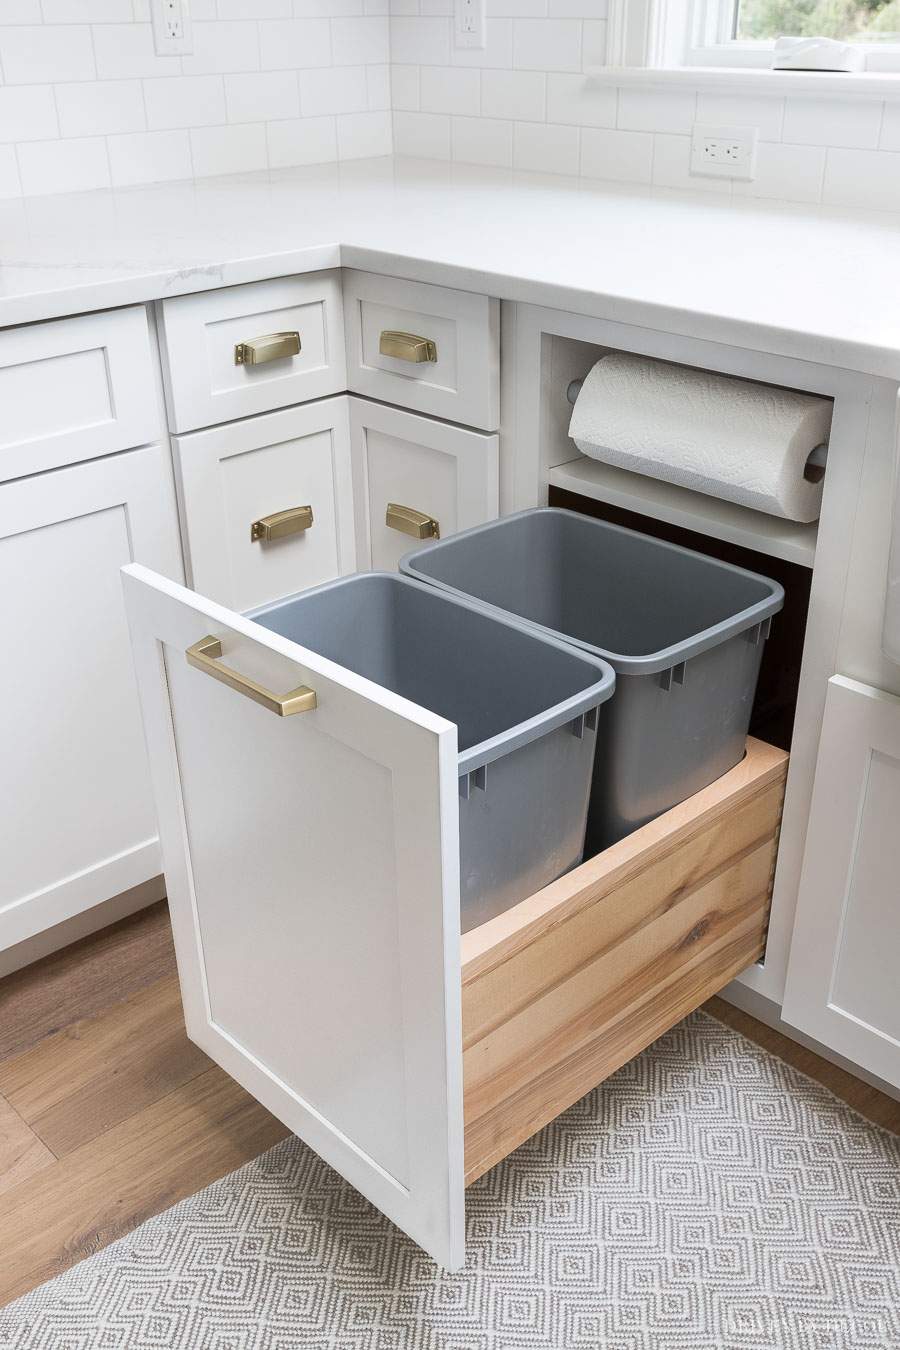 Waste bins integrated in a kitchen cabinet